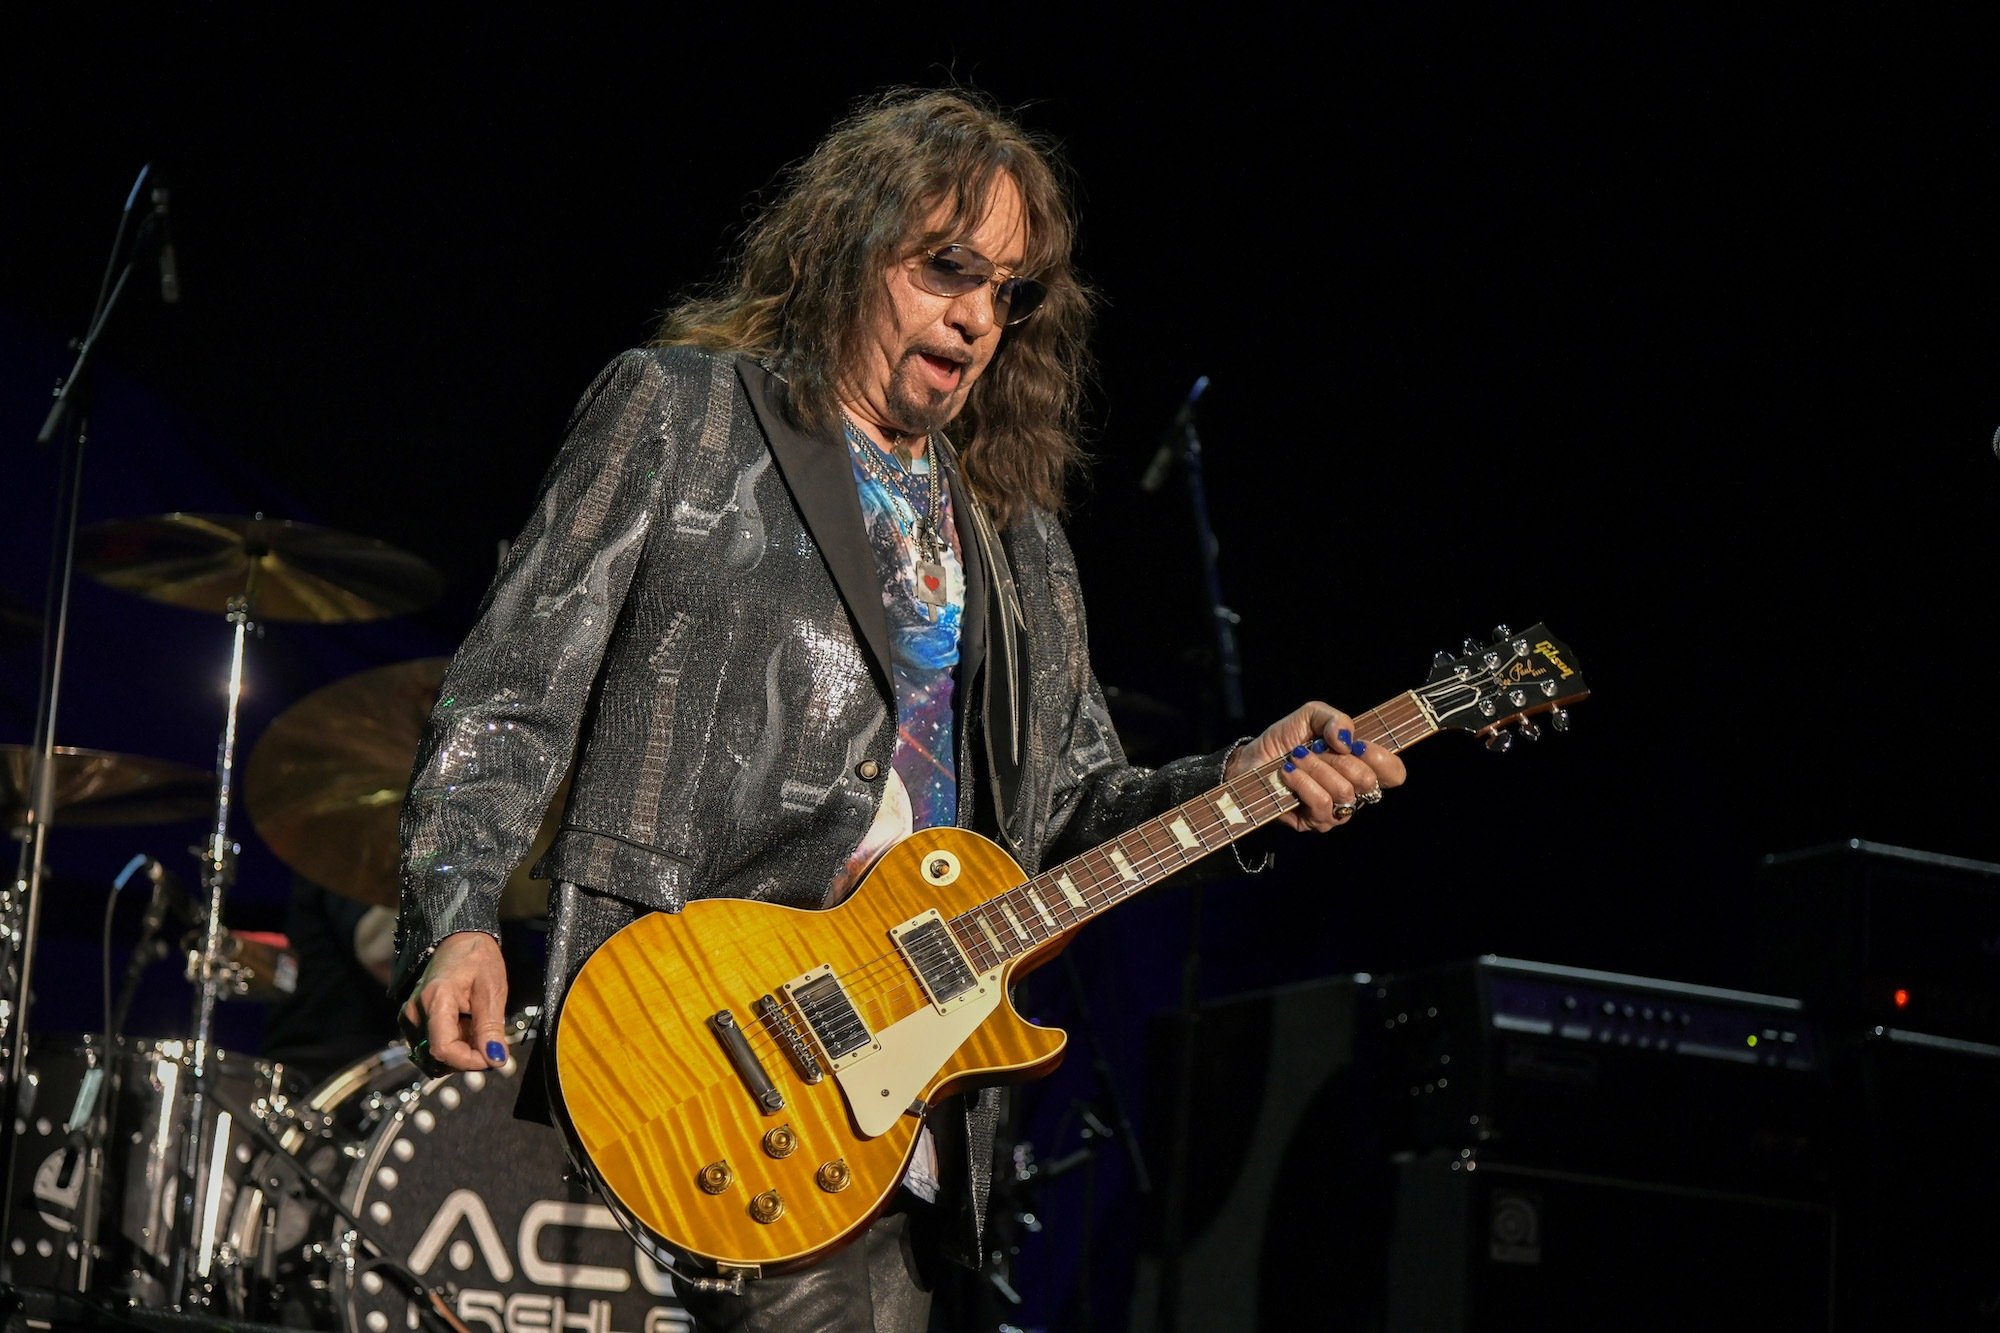 Ace Frehley Live at Huntington Bank Pavilion [GALLERY] 15